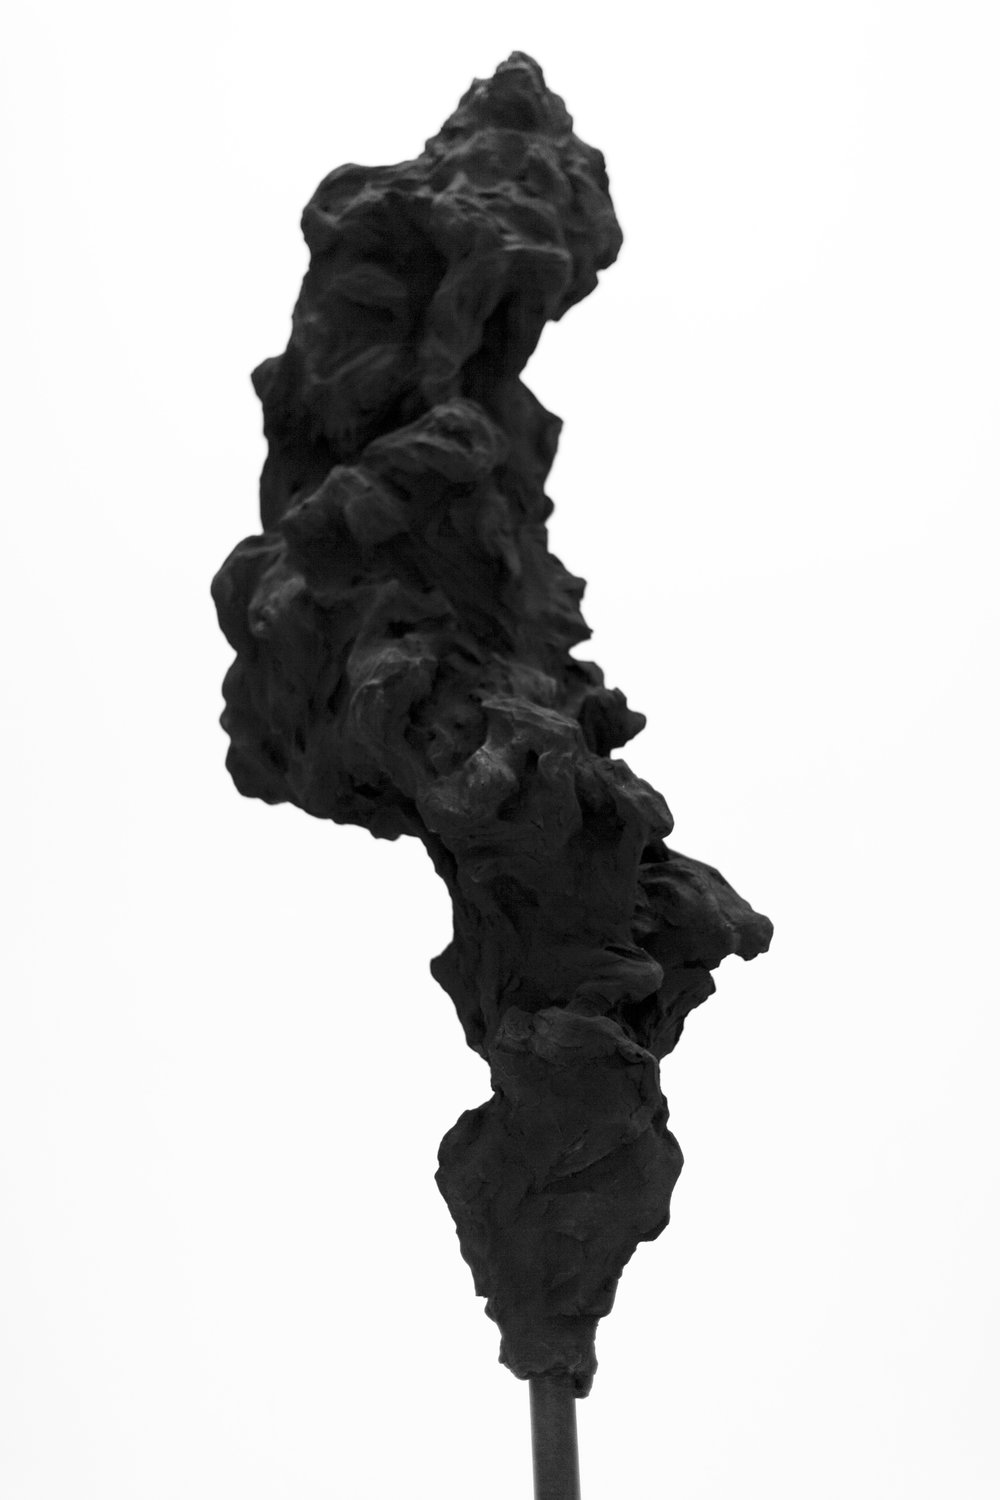 Cloud Totem No.2,  2014    Charcoal powder, resin and steel, 300 x 60 x 60 cm